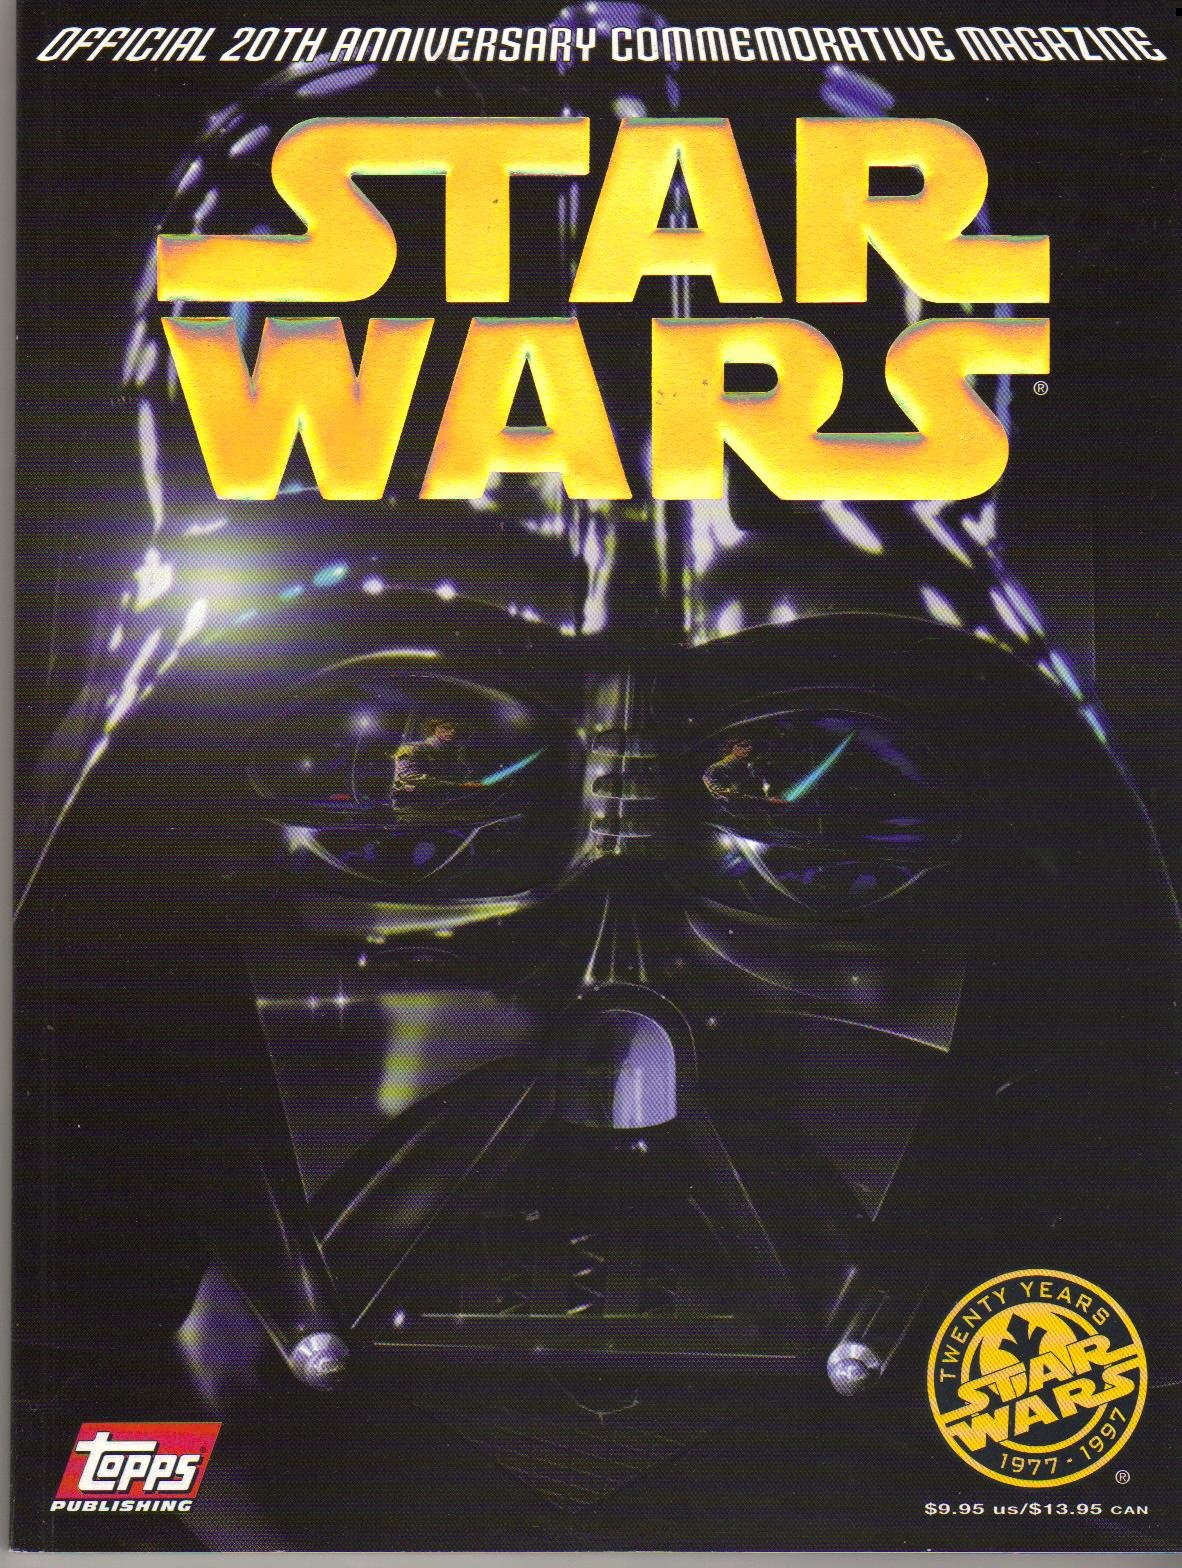 The Star Wars Official 20th Anniversary Commemorative Magazine